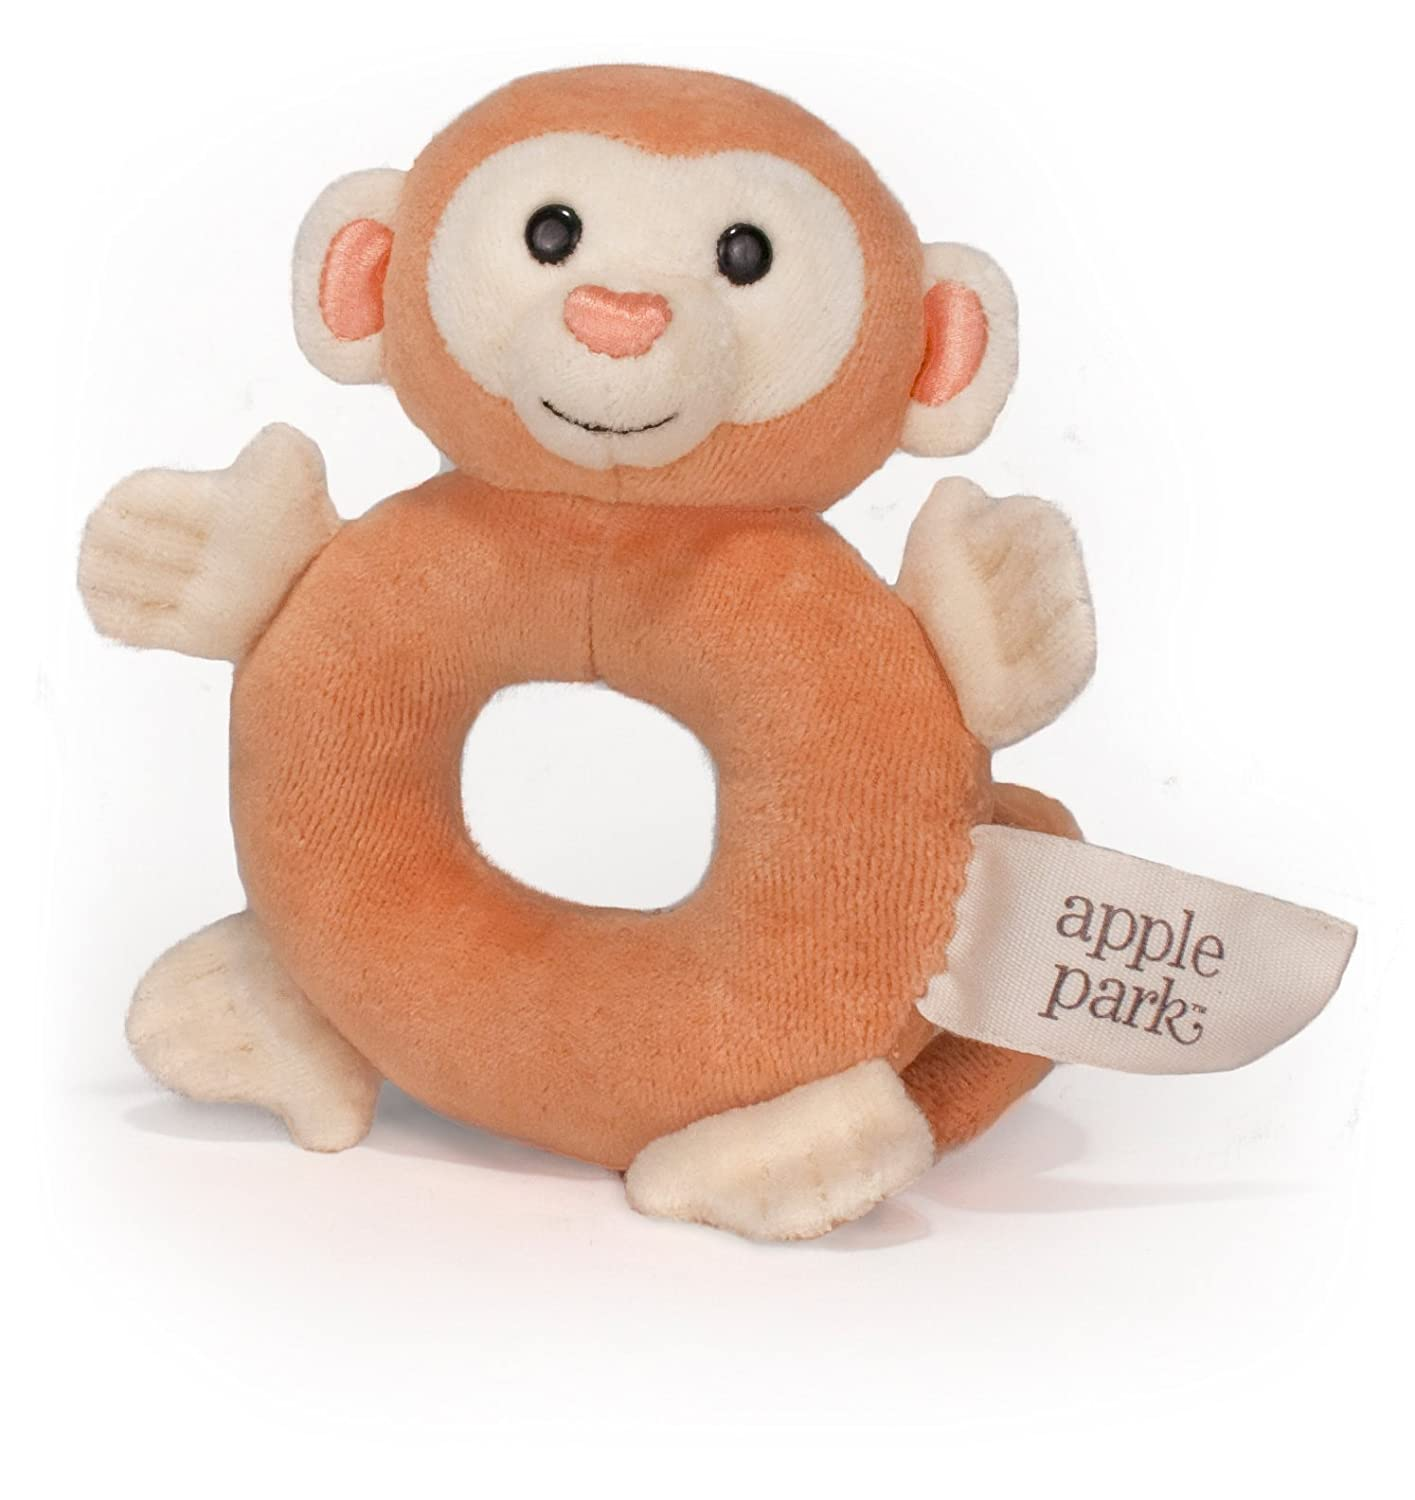 "Apple Park Picnic Pal Organic 5"" Soft Teething Toy, Monkey"